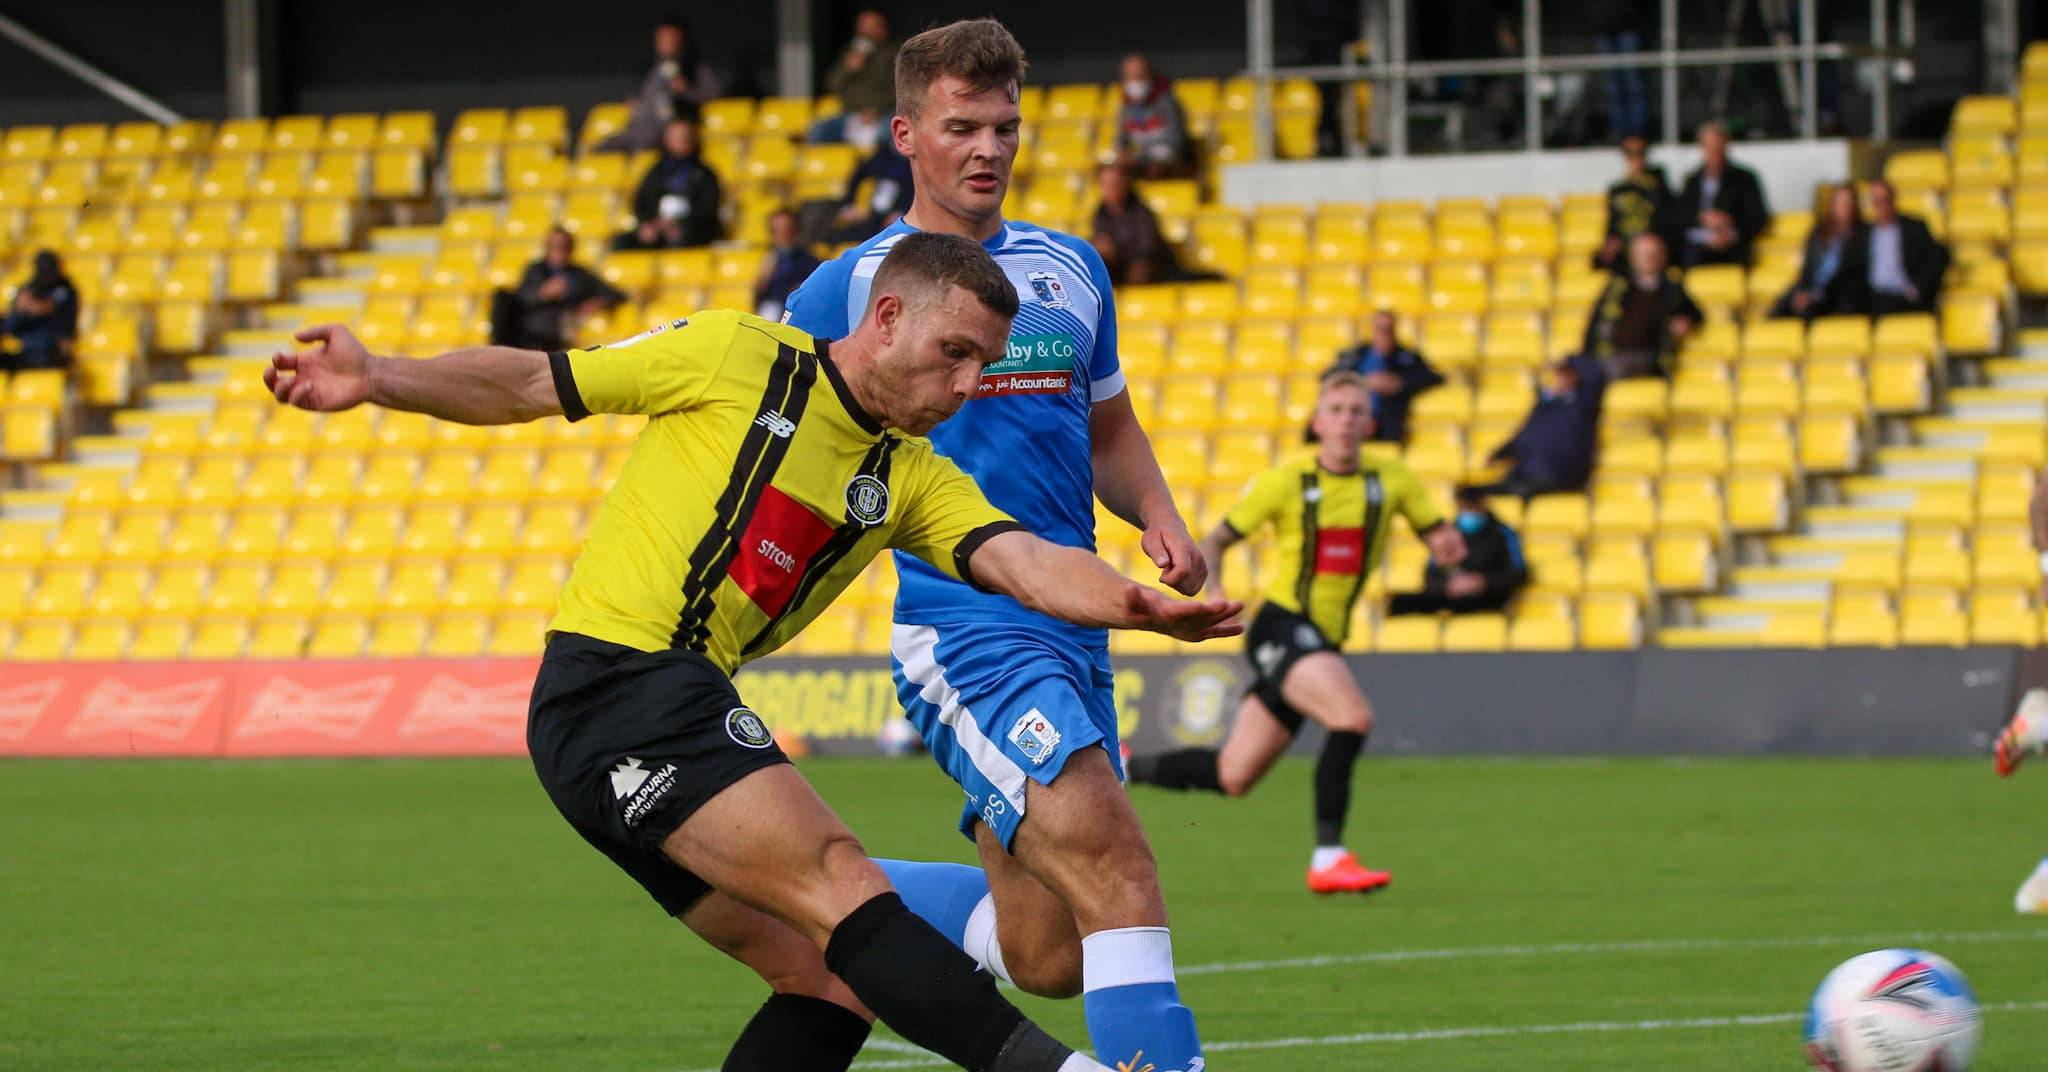 Match Preview: Grimsby Town vs Harrogate Town